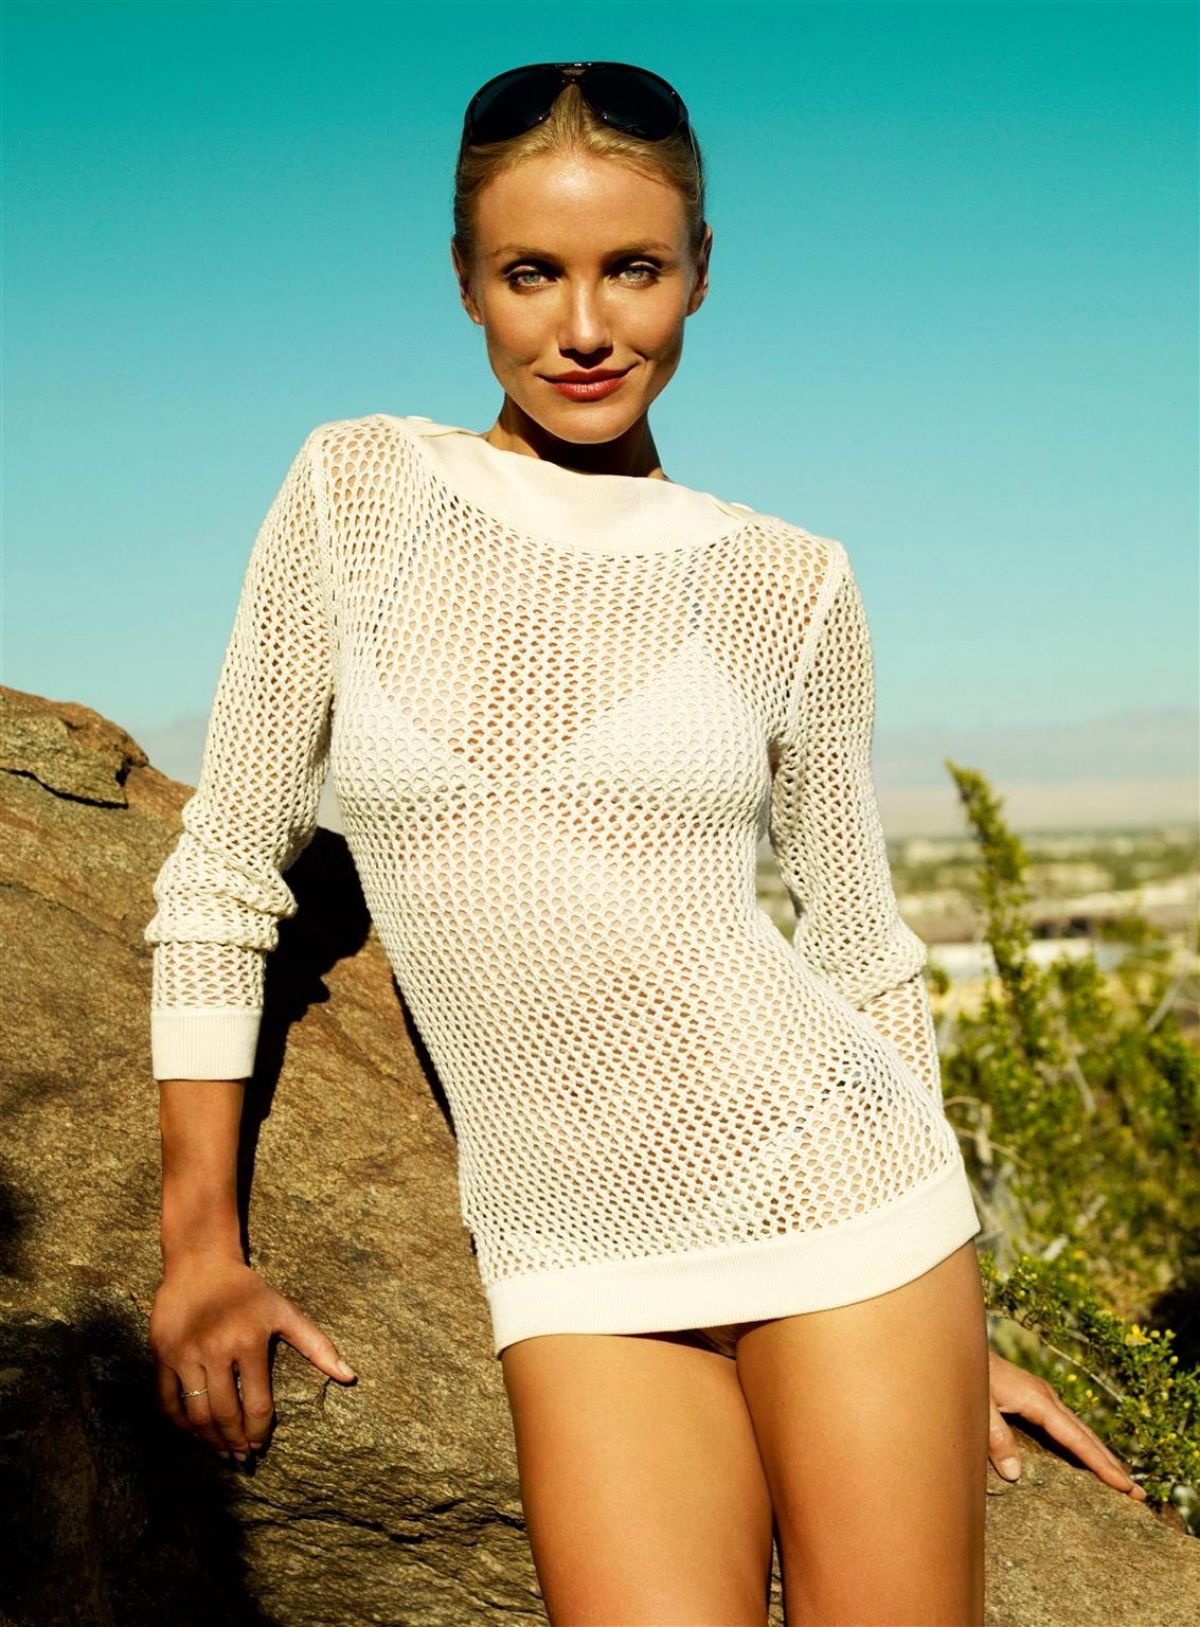 Best from the Past - CAMERON DIAZ in Vogue Magazine, June 2009